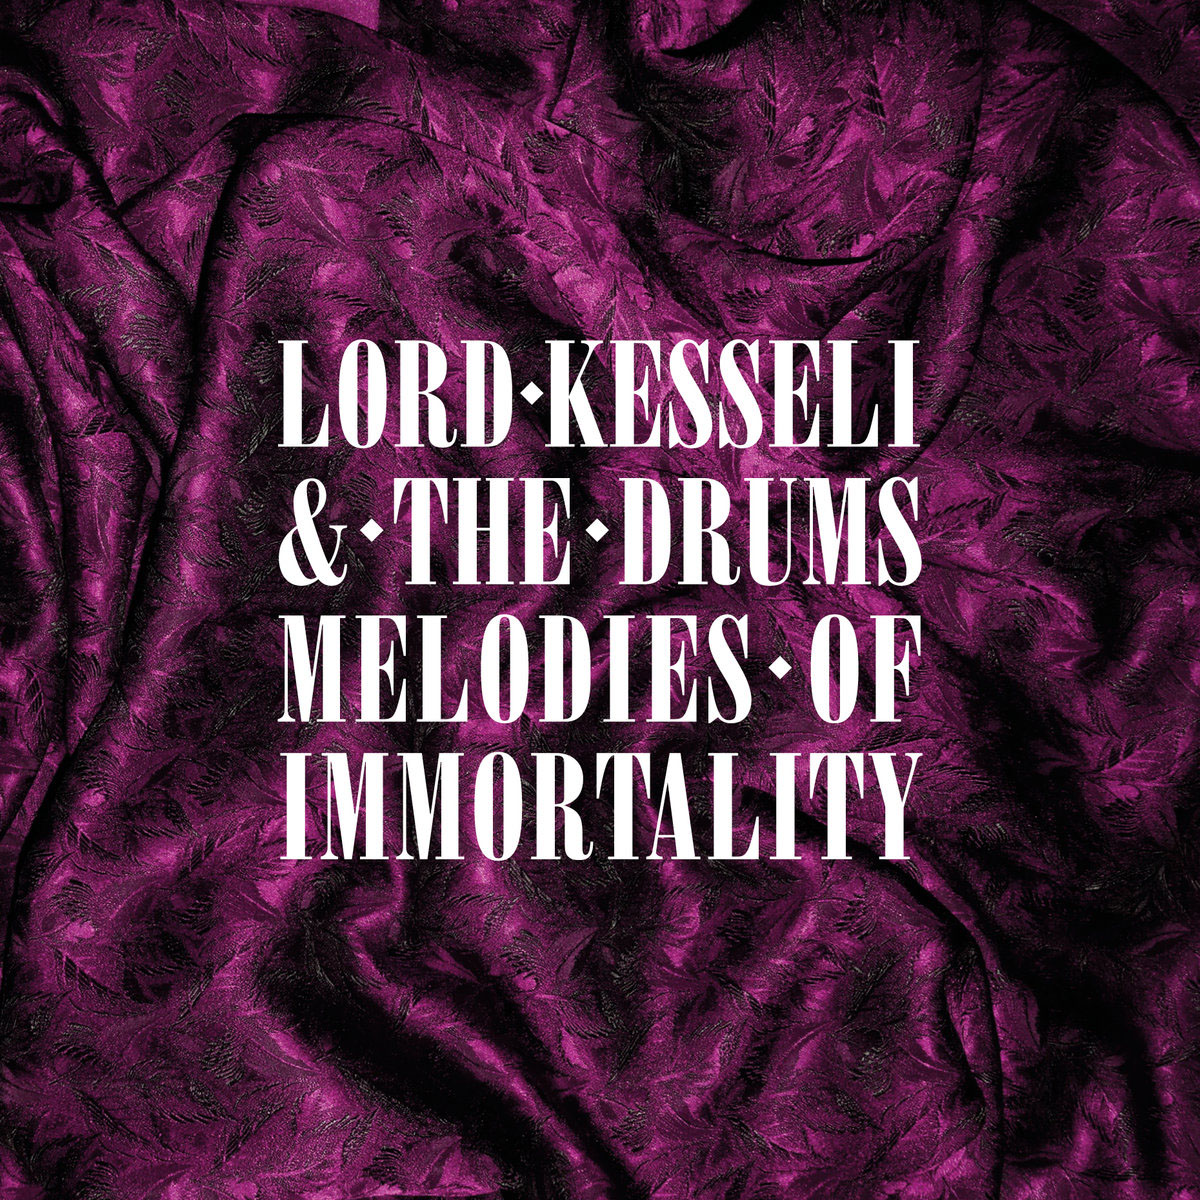 Lord Kesseli and the Drums - Melodies of Immortality